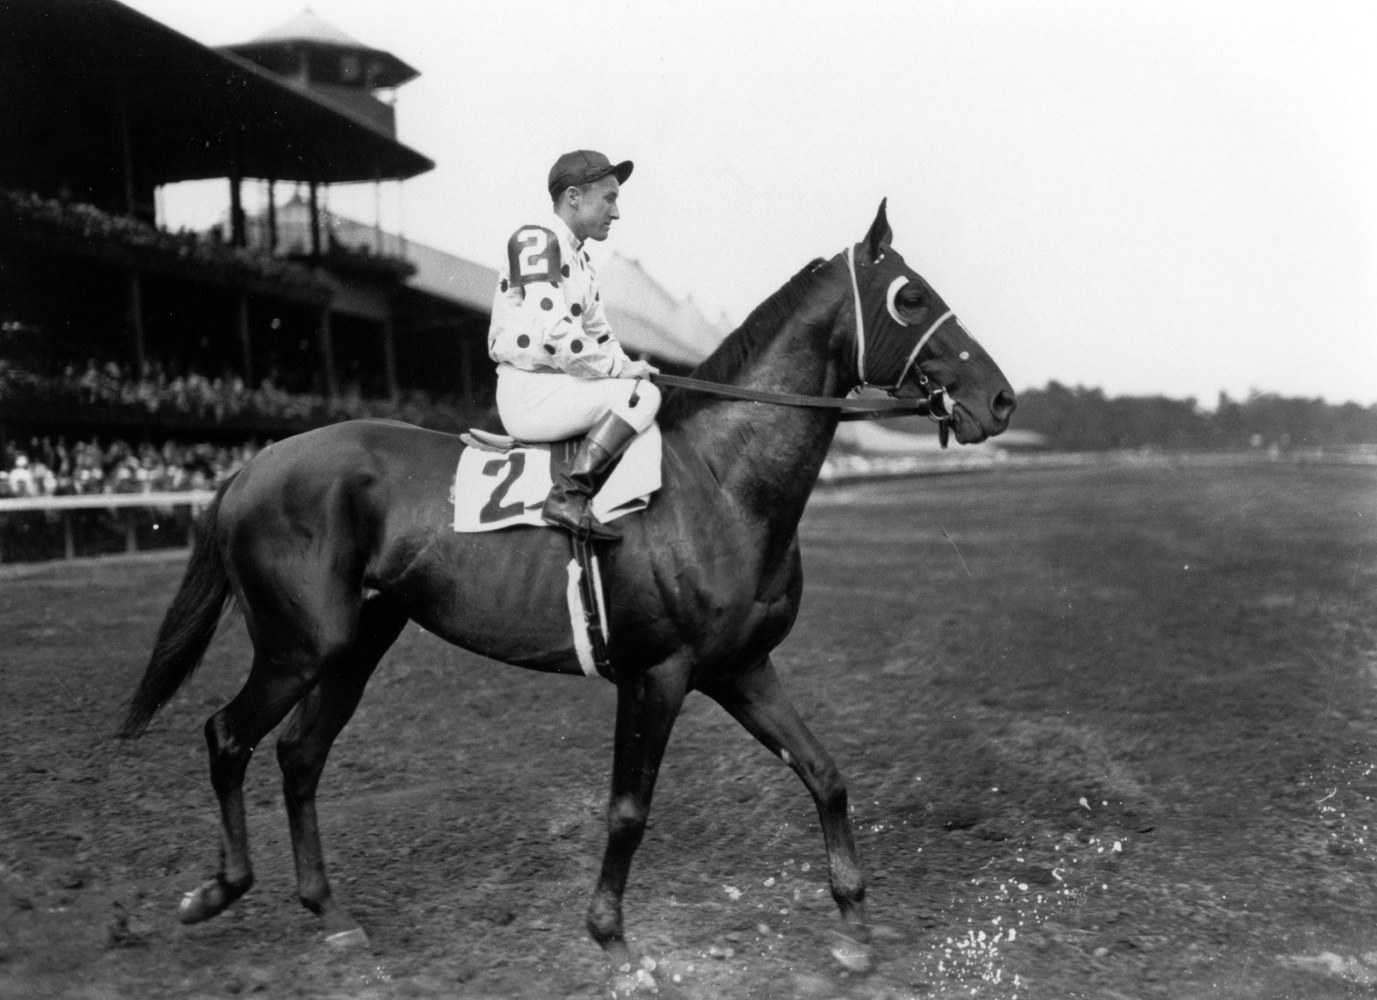 James Stout and Granville at Saratoga in 1936 (Keeneland Library Cook Collection)